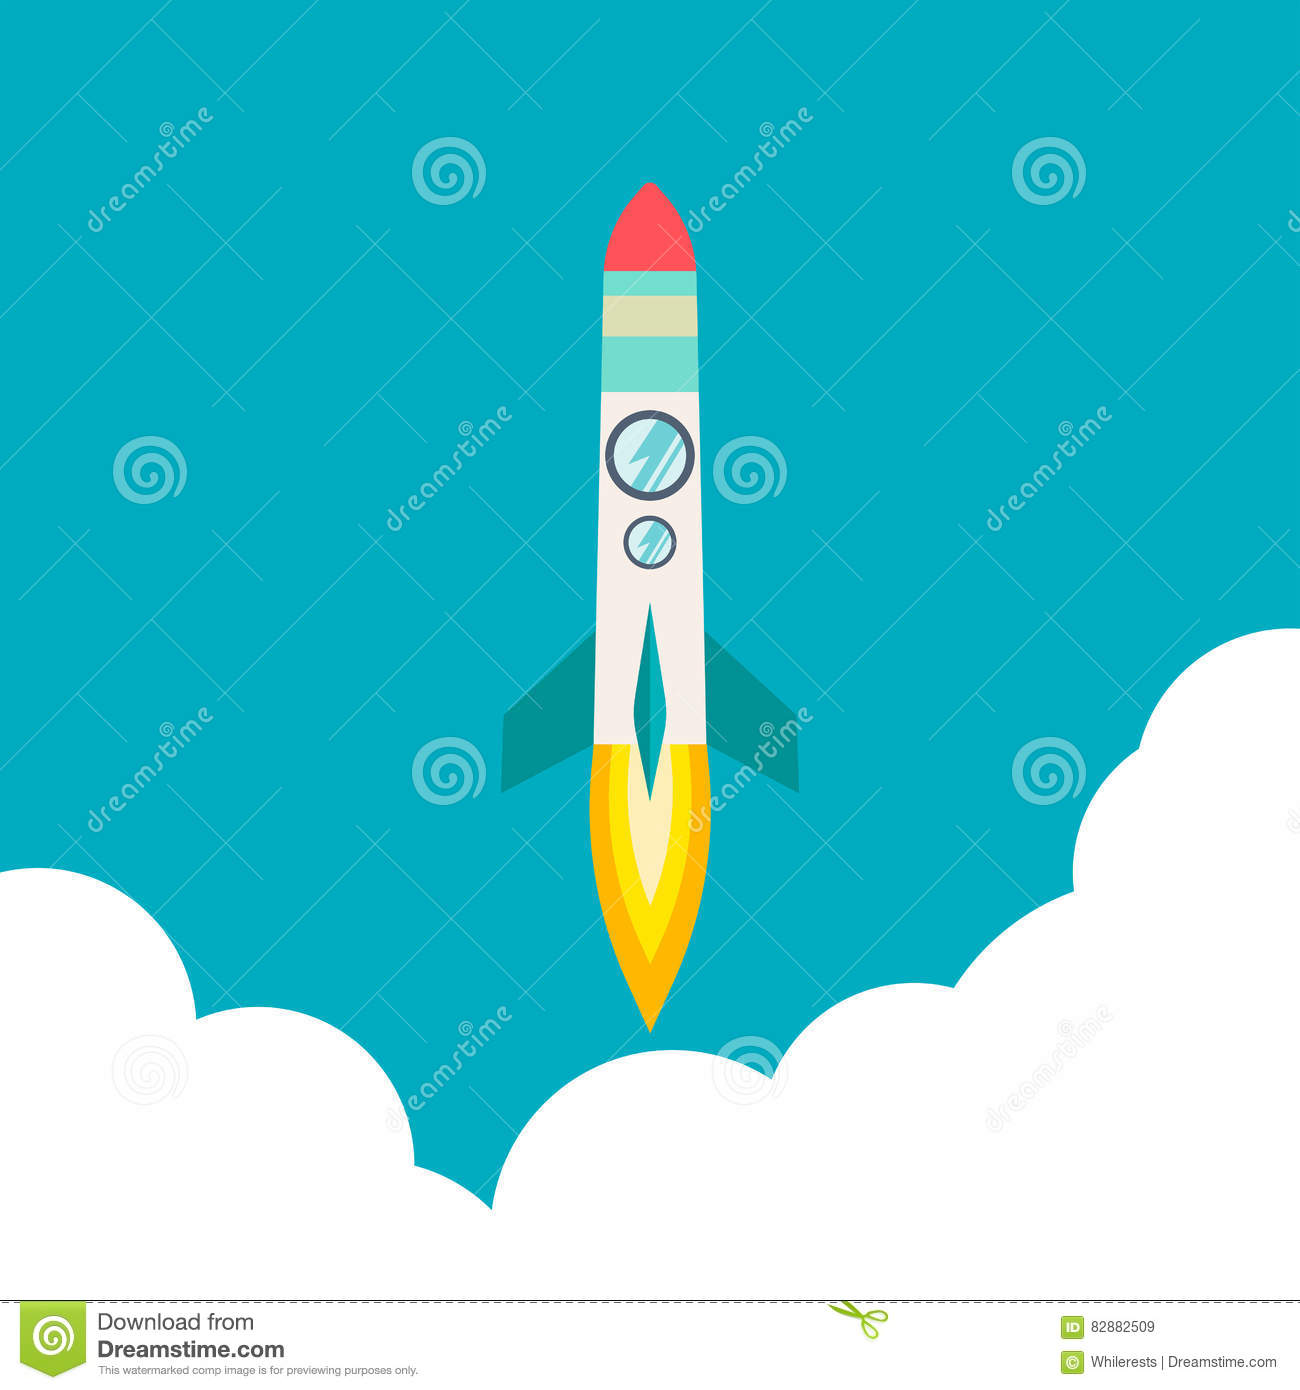 Rocket ship in a flat style.Vector illustration with 3d flying rocket.Space travel to the moon.Space rocket launch